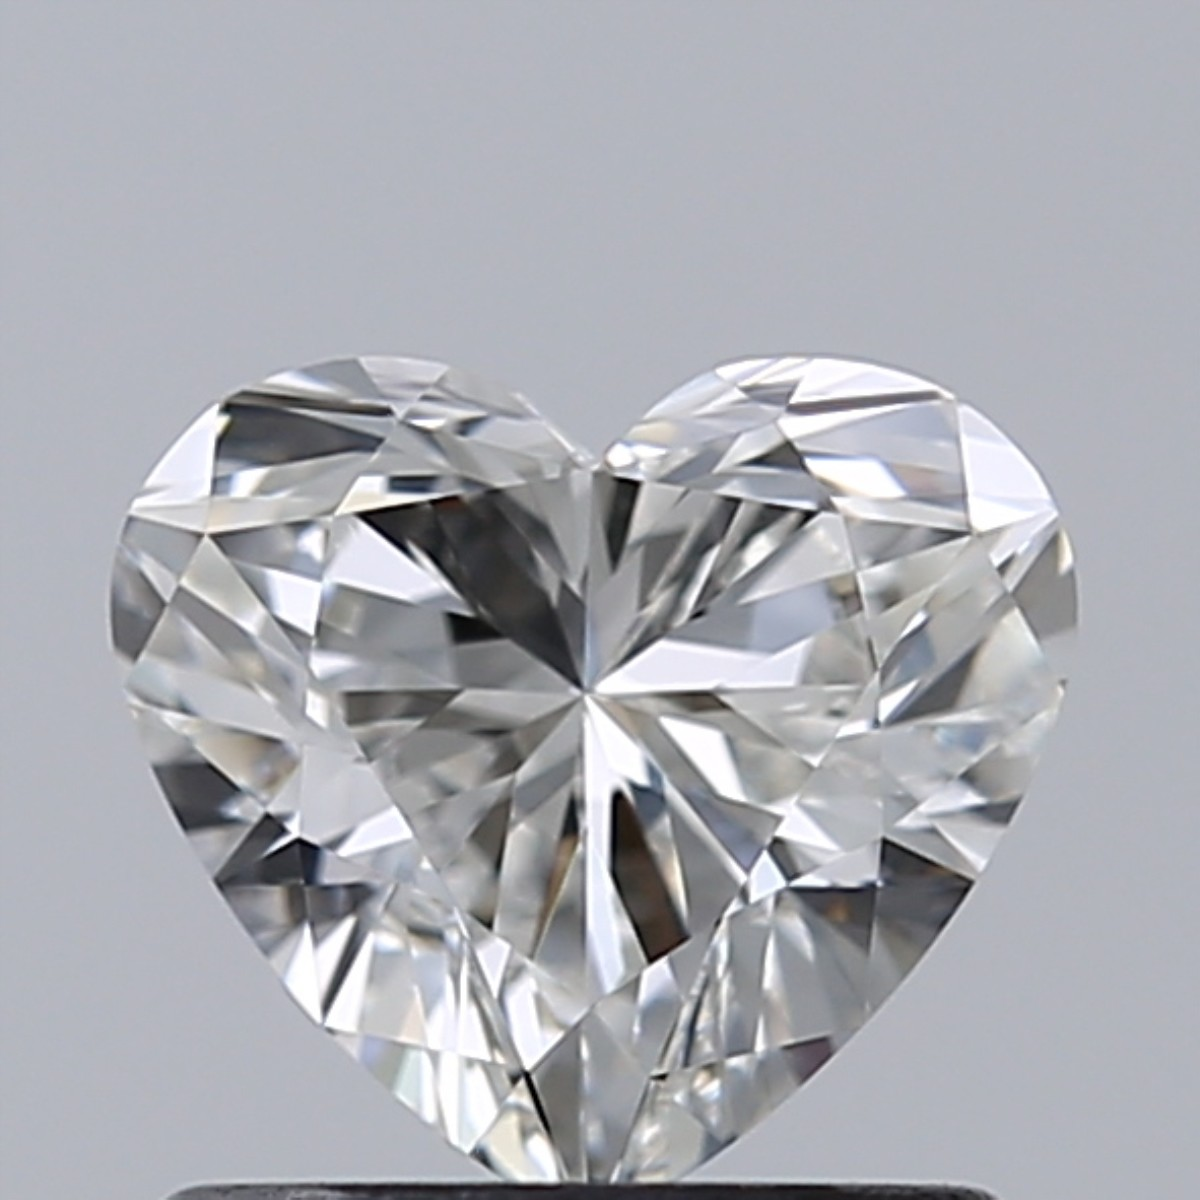 0.76 Carat Heart Diamond (G/IF)